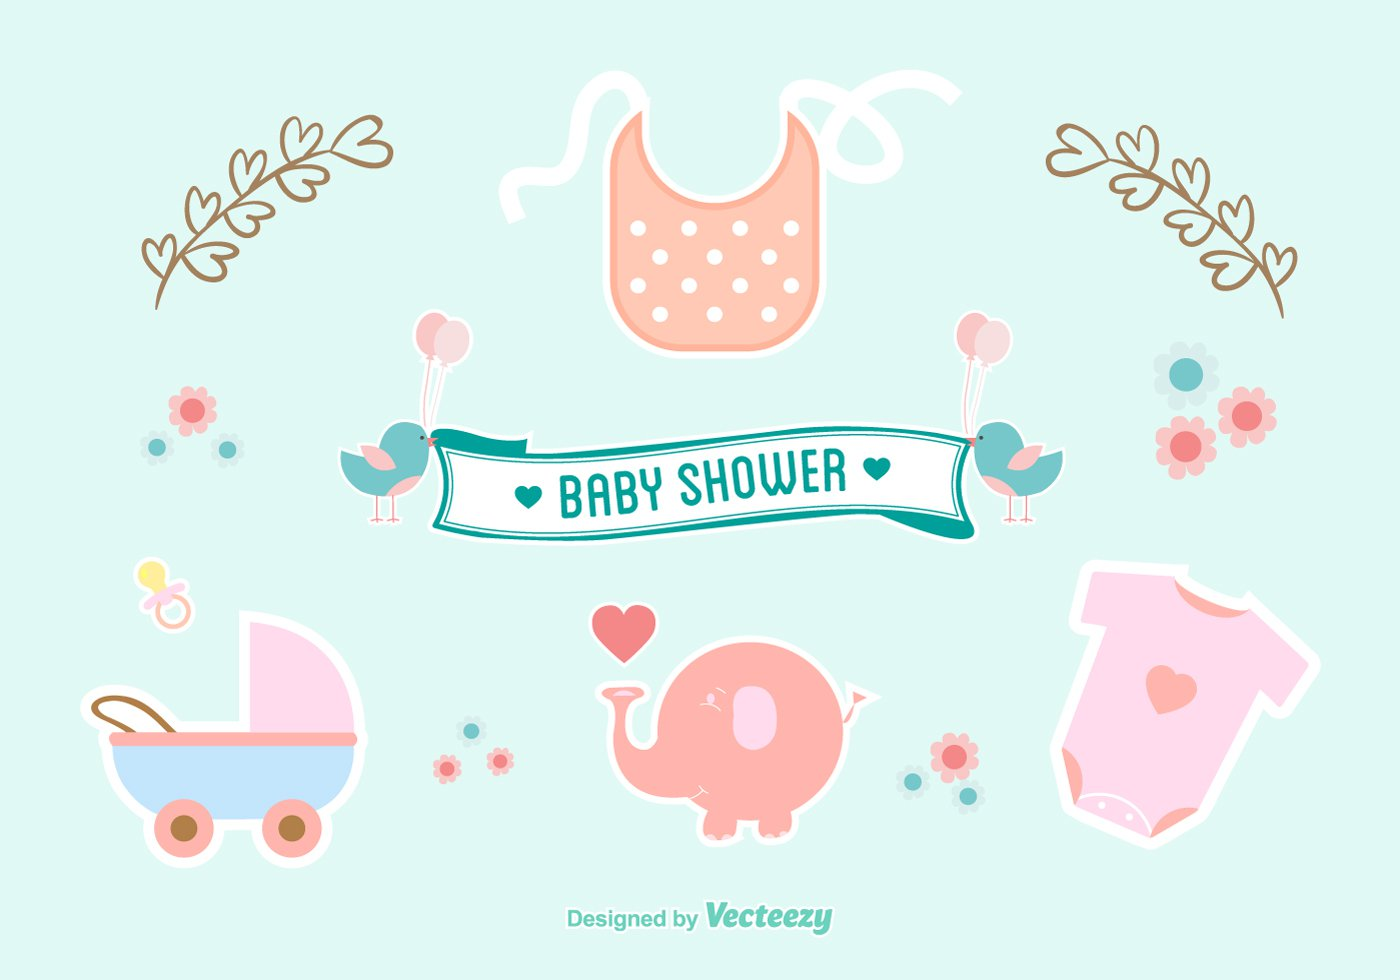 Pinterest Wallpaper Quotes Download Baby Shower Wallpaper Free Gallery